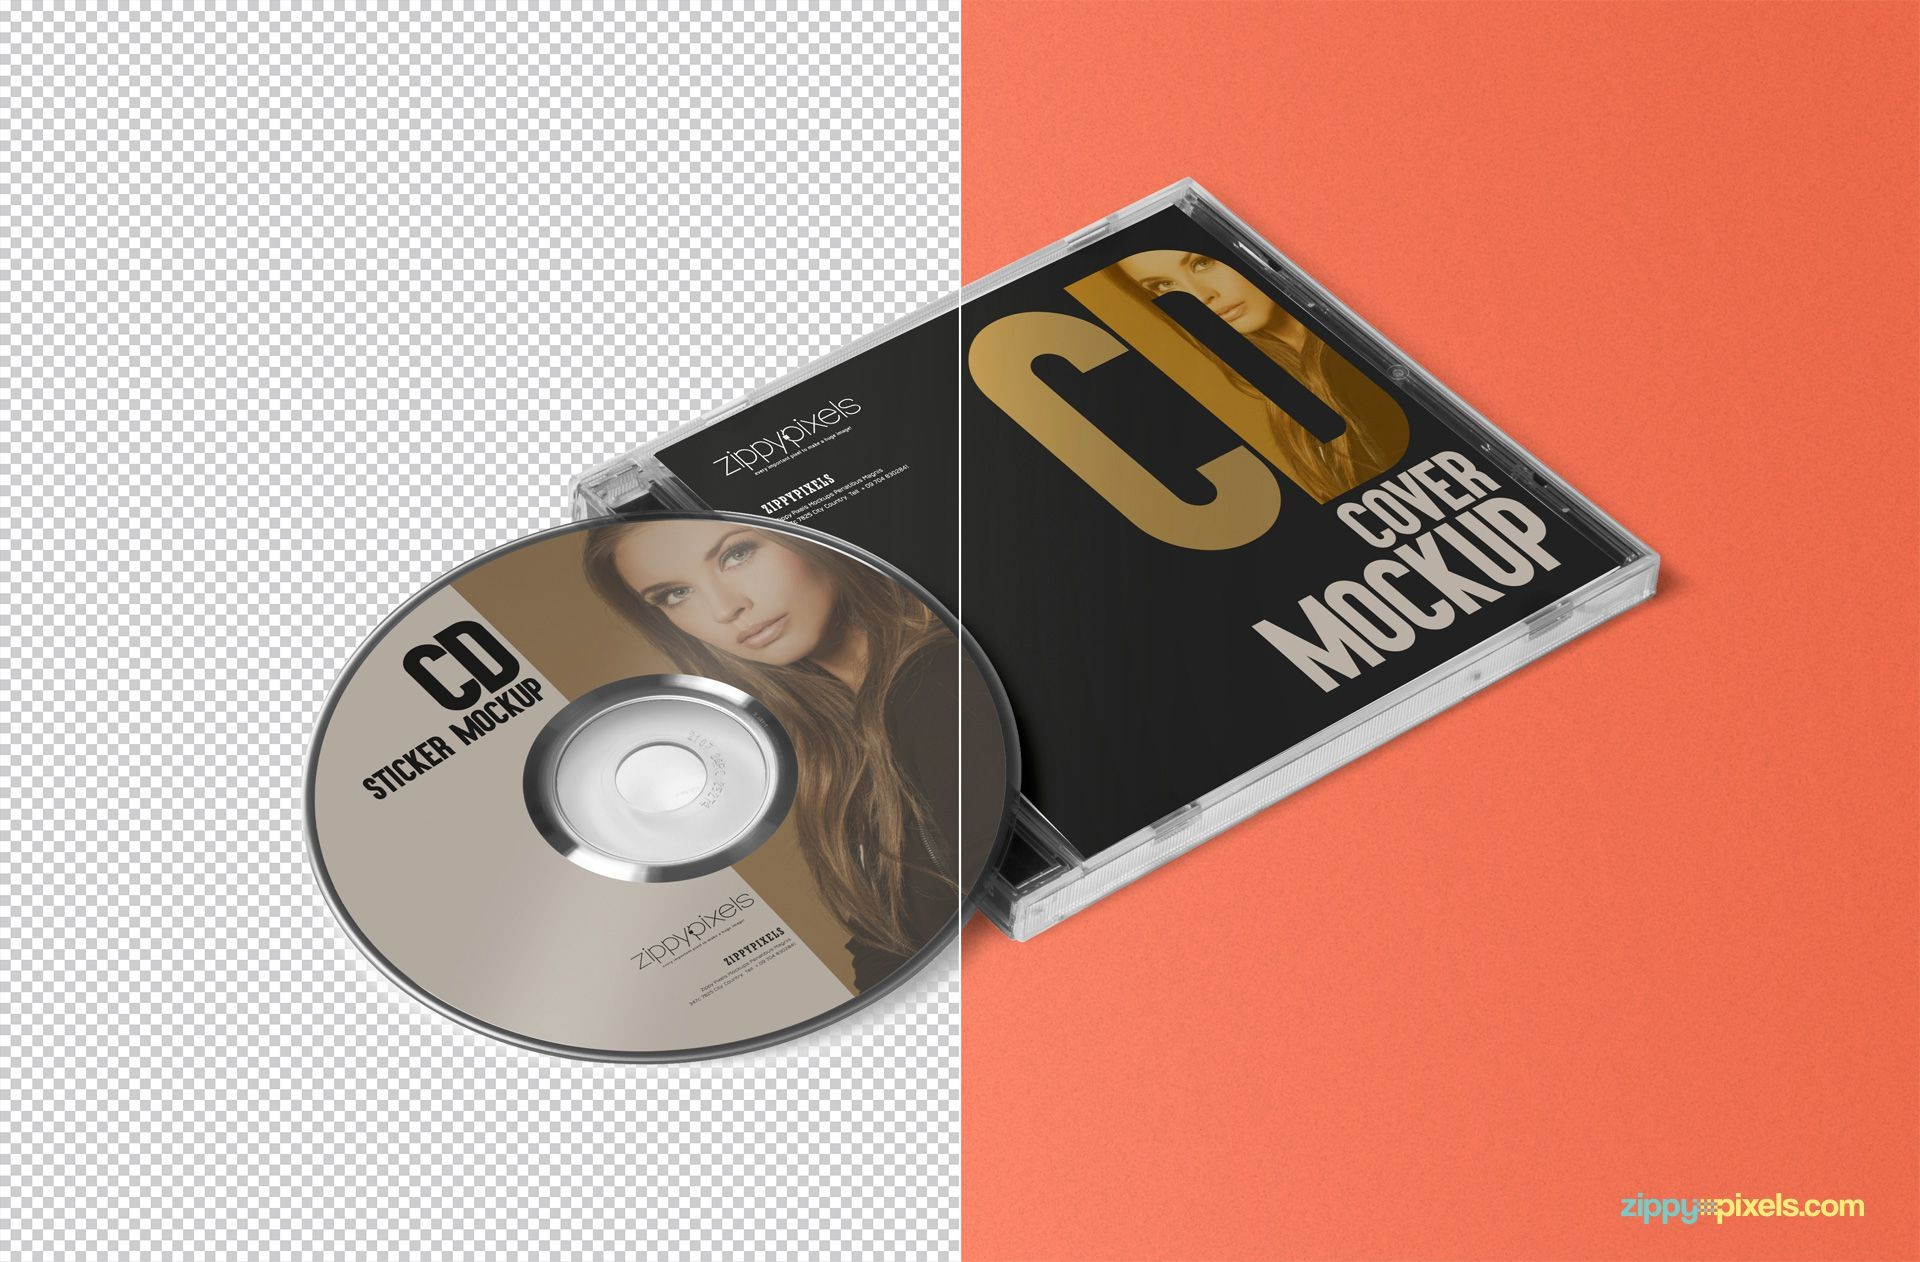 001 Exceptional Cd Label Design Template Free Download Concept  Cover Psd1920